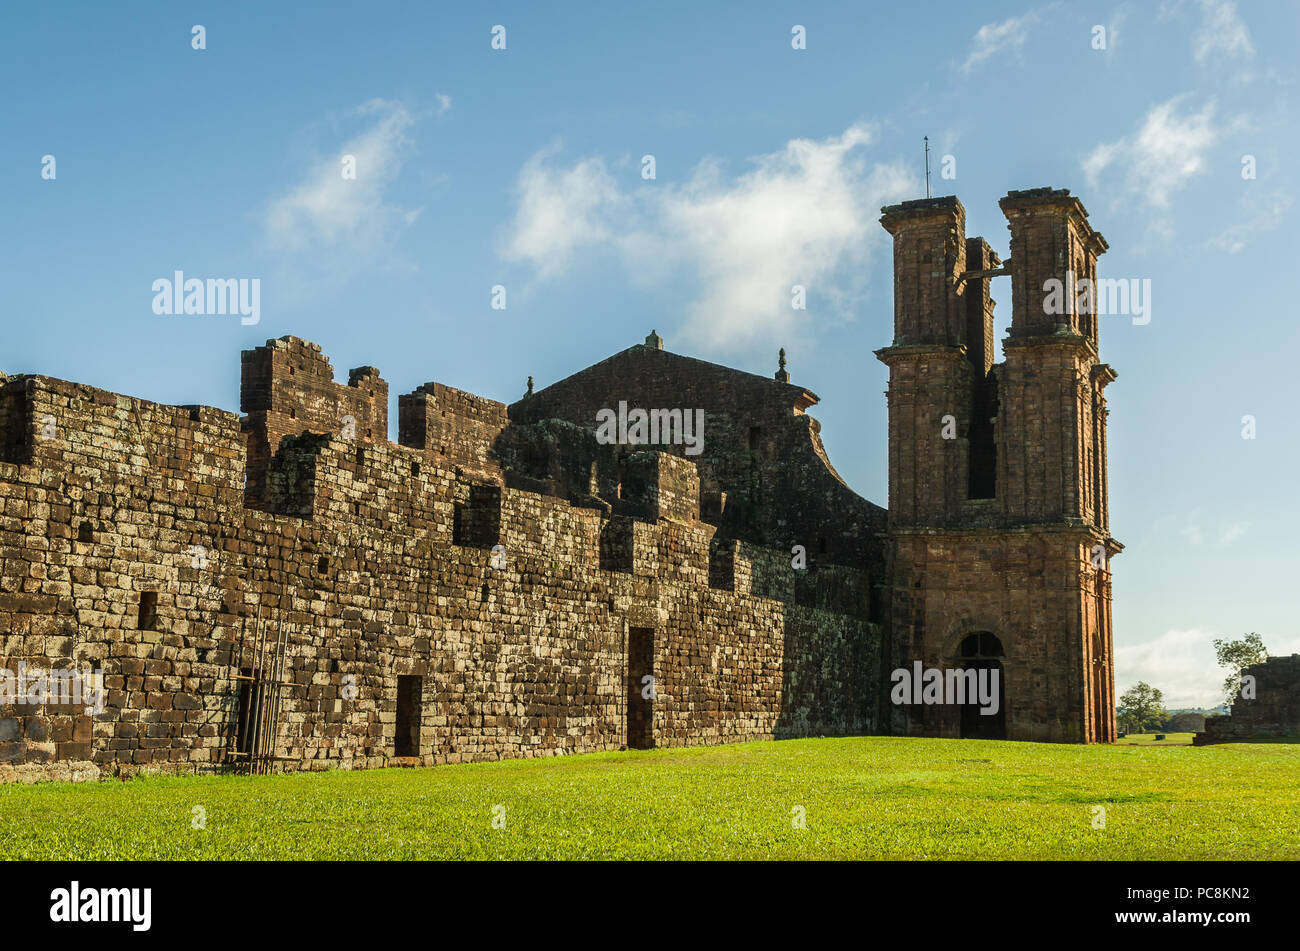 Part of the UNESCO site - Jesuit Missions of the Guaranis: Church, Ruins of Sao Miguel das Missoe, Rio Grande do Sul, Brazil. Stock Photo